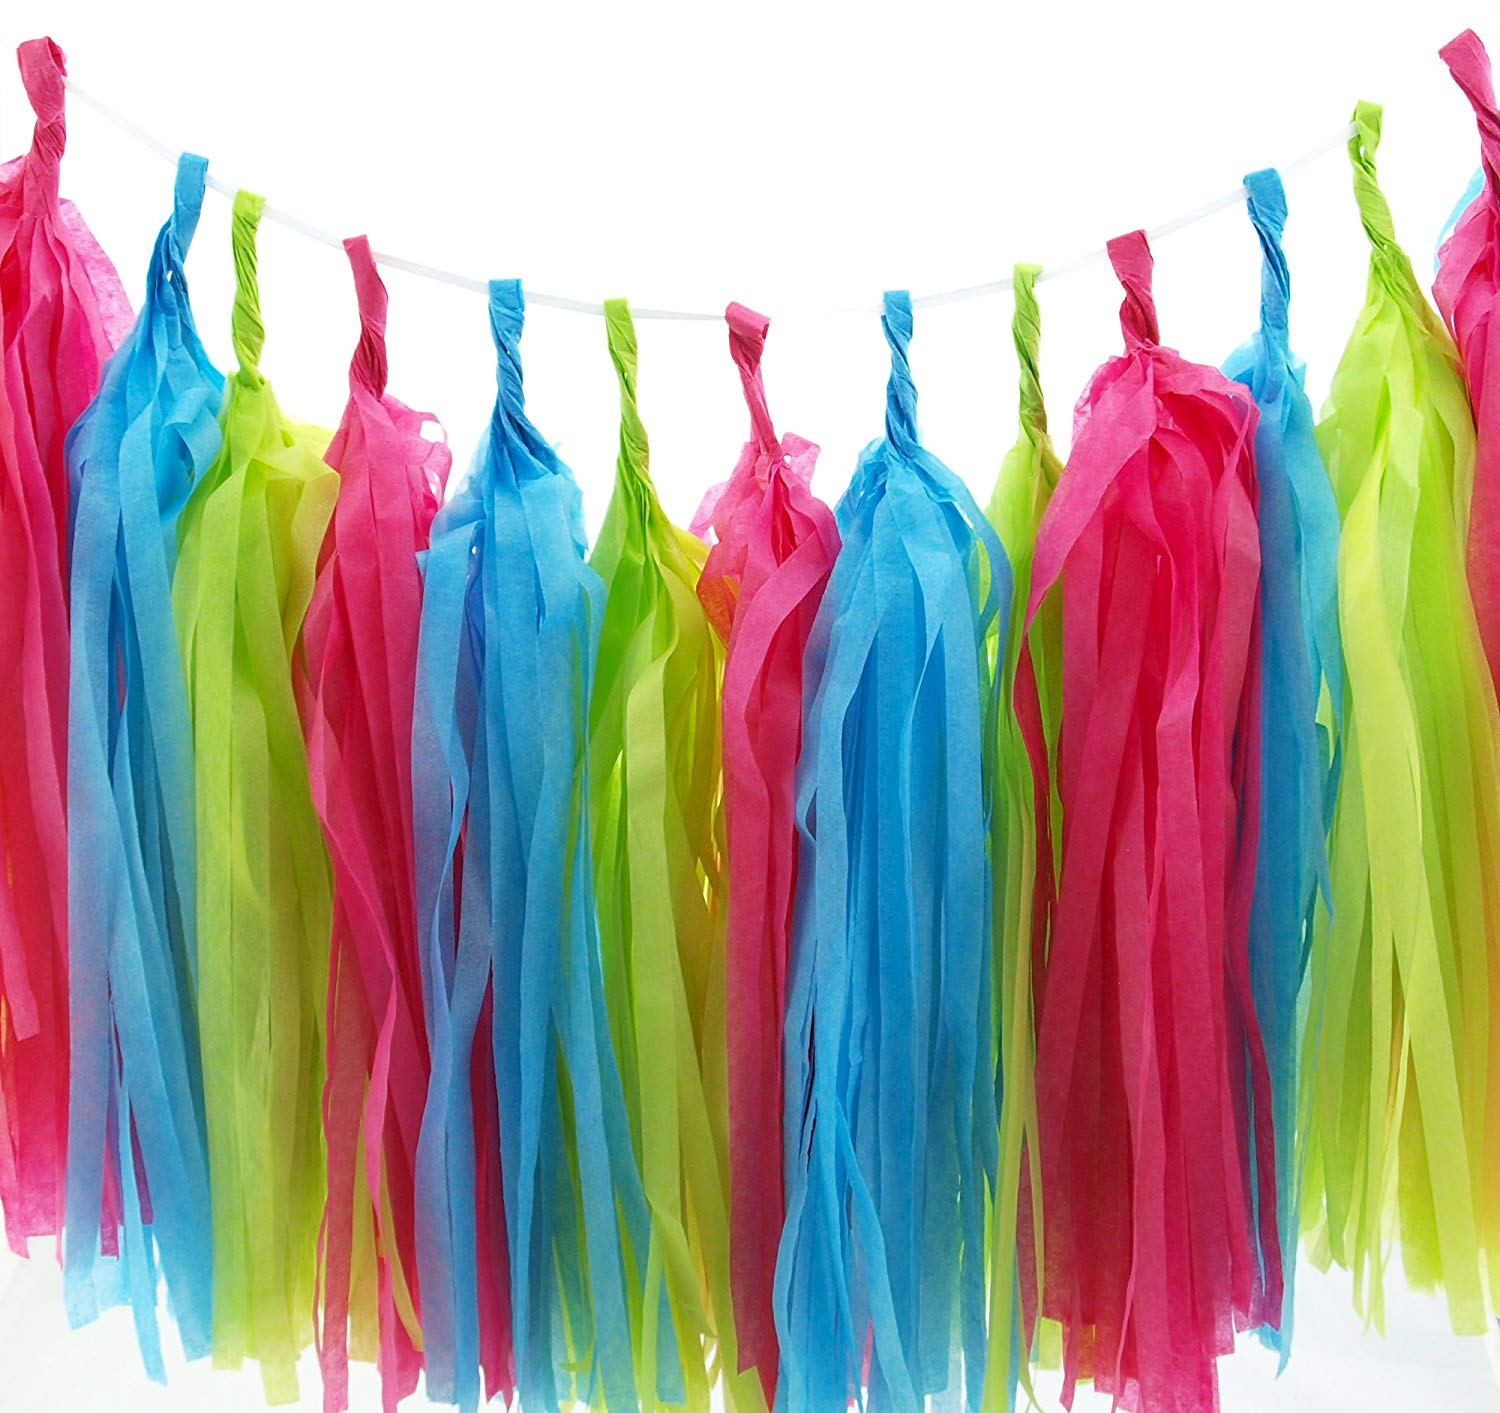 Mermaid Tissue Paper Garland, Under The Sea Party Tassels (Set of 15) - Mermaid Party Supplies, Pink, Aqua Blue & Green Tissue Paper Tassels, Girls Bedroom Mermaids Party Decorations Banner Backdrop